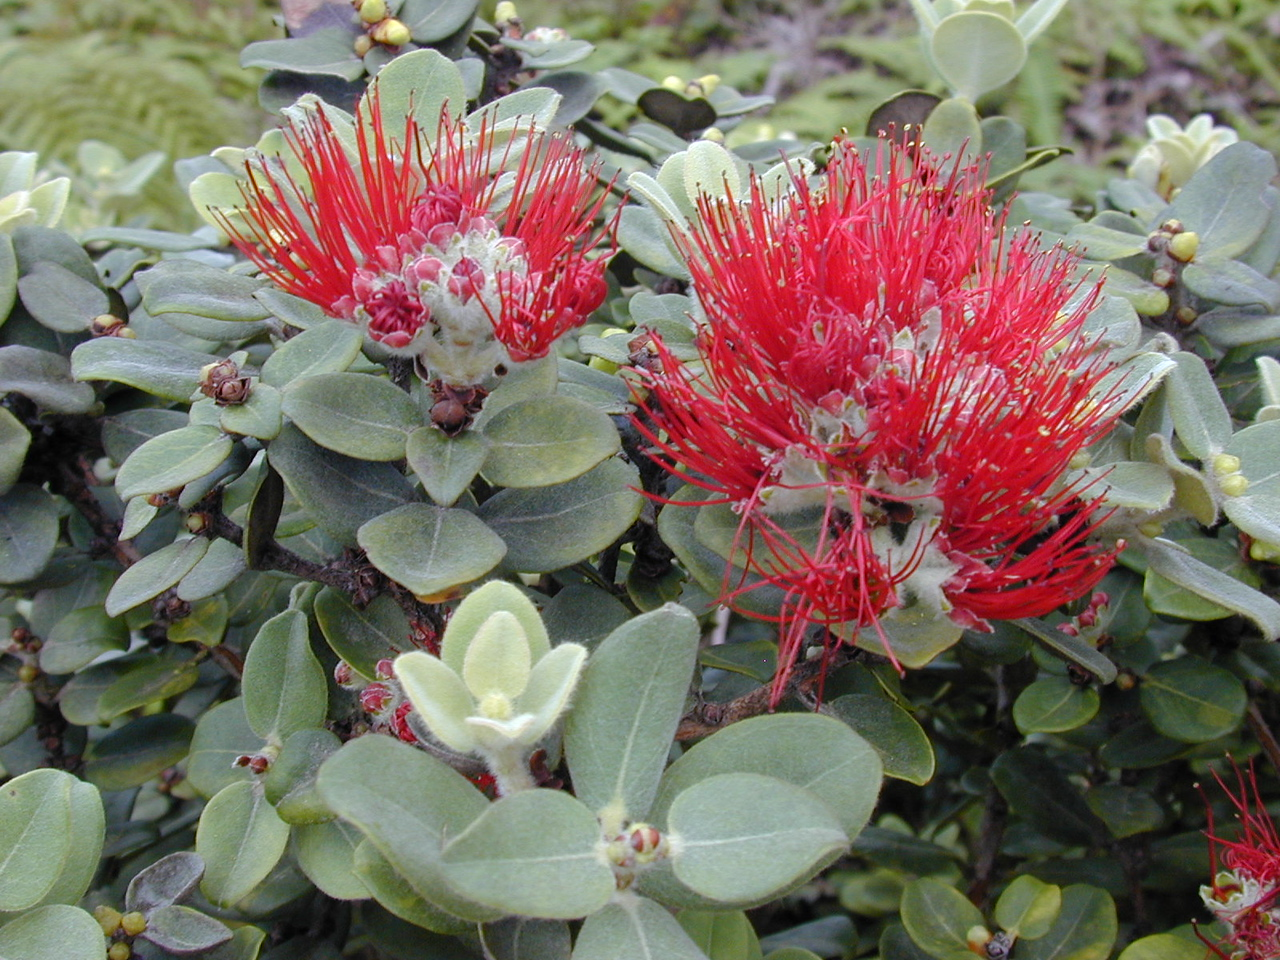 'Ohia (Metrosideros polymorpha [Myrtaceae]) is a dominant forest tree in the Waikamoi Preserve.  The native honeycreepers depend on its nectar for food.  More information about 'ohia is available from the Hawaiian Ecosystems at Risk project (HEAR).  (image by Forest & Kim Starr)